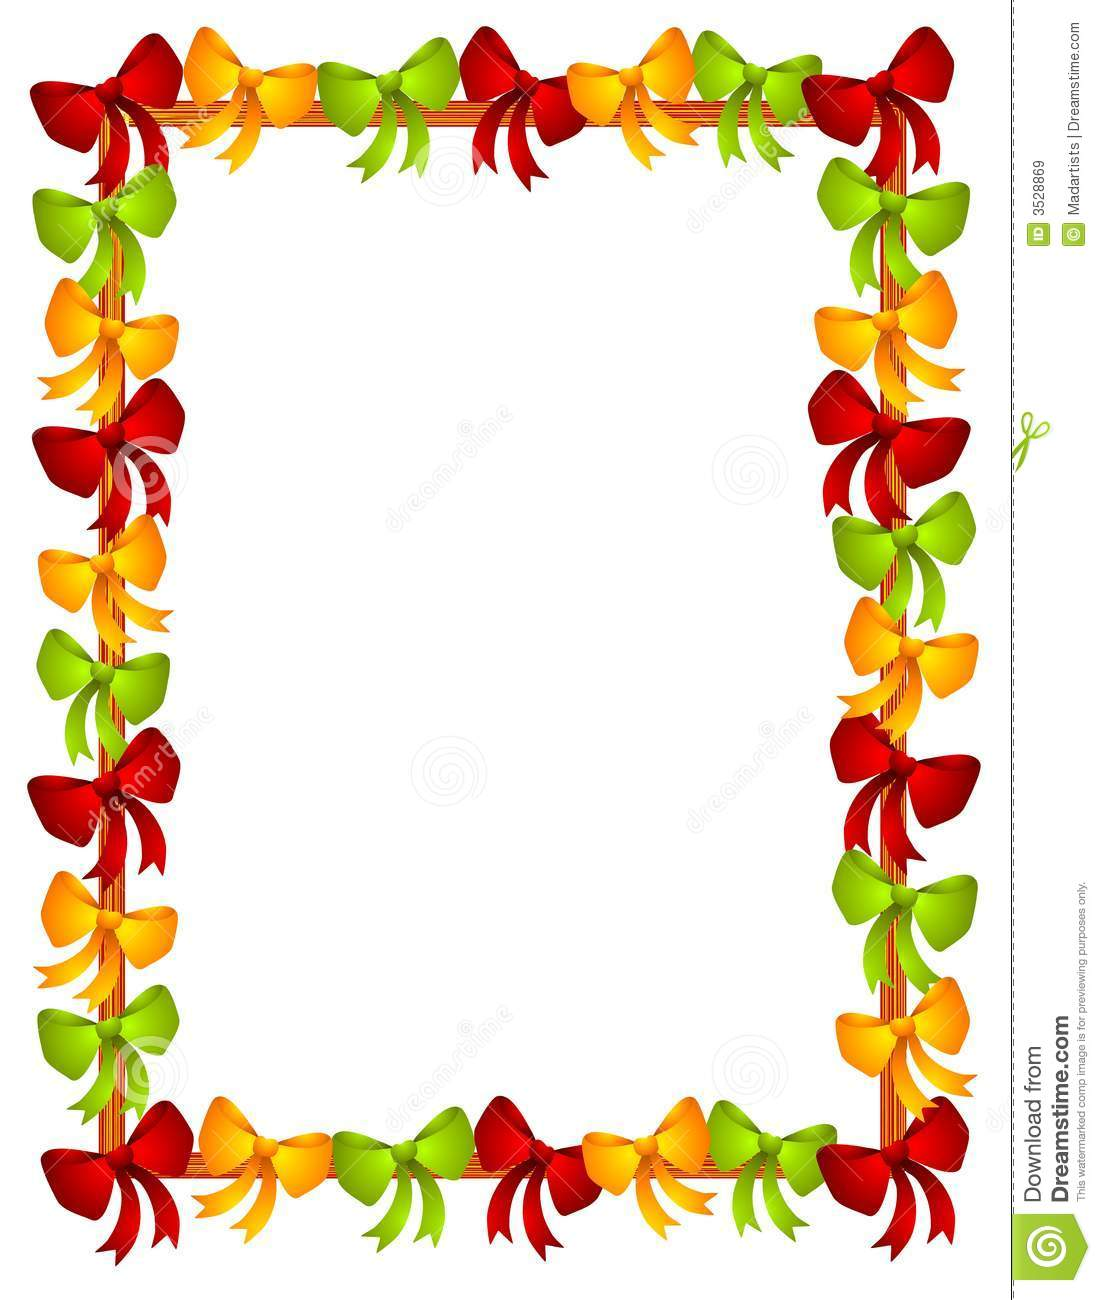 Clipart frames and borders free download clipart royalty free stock Borders And Frames Clipart | Free download best Borders And Frames ... clipart royalty free stock